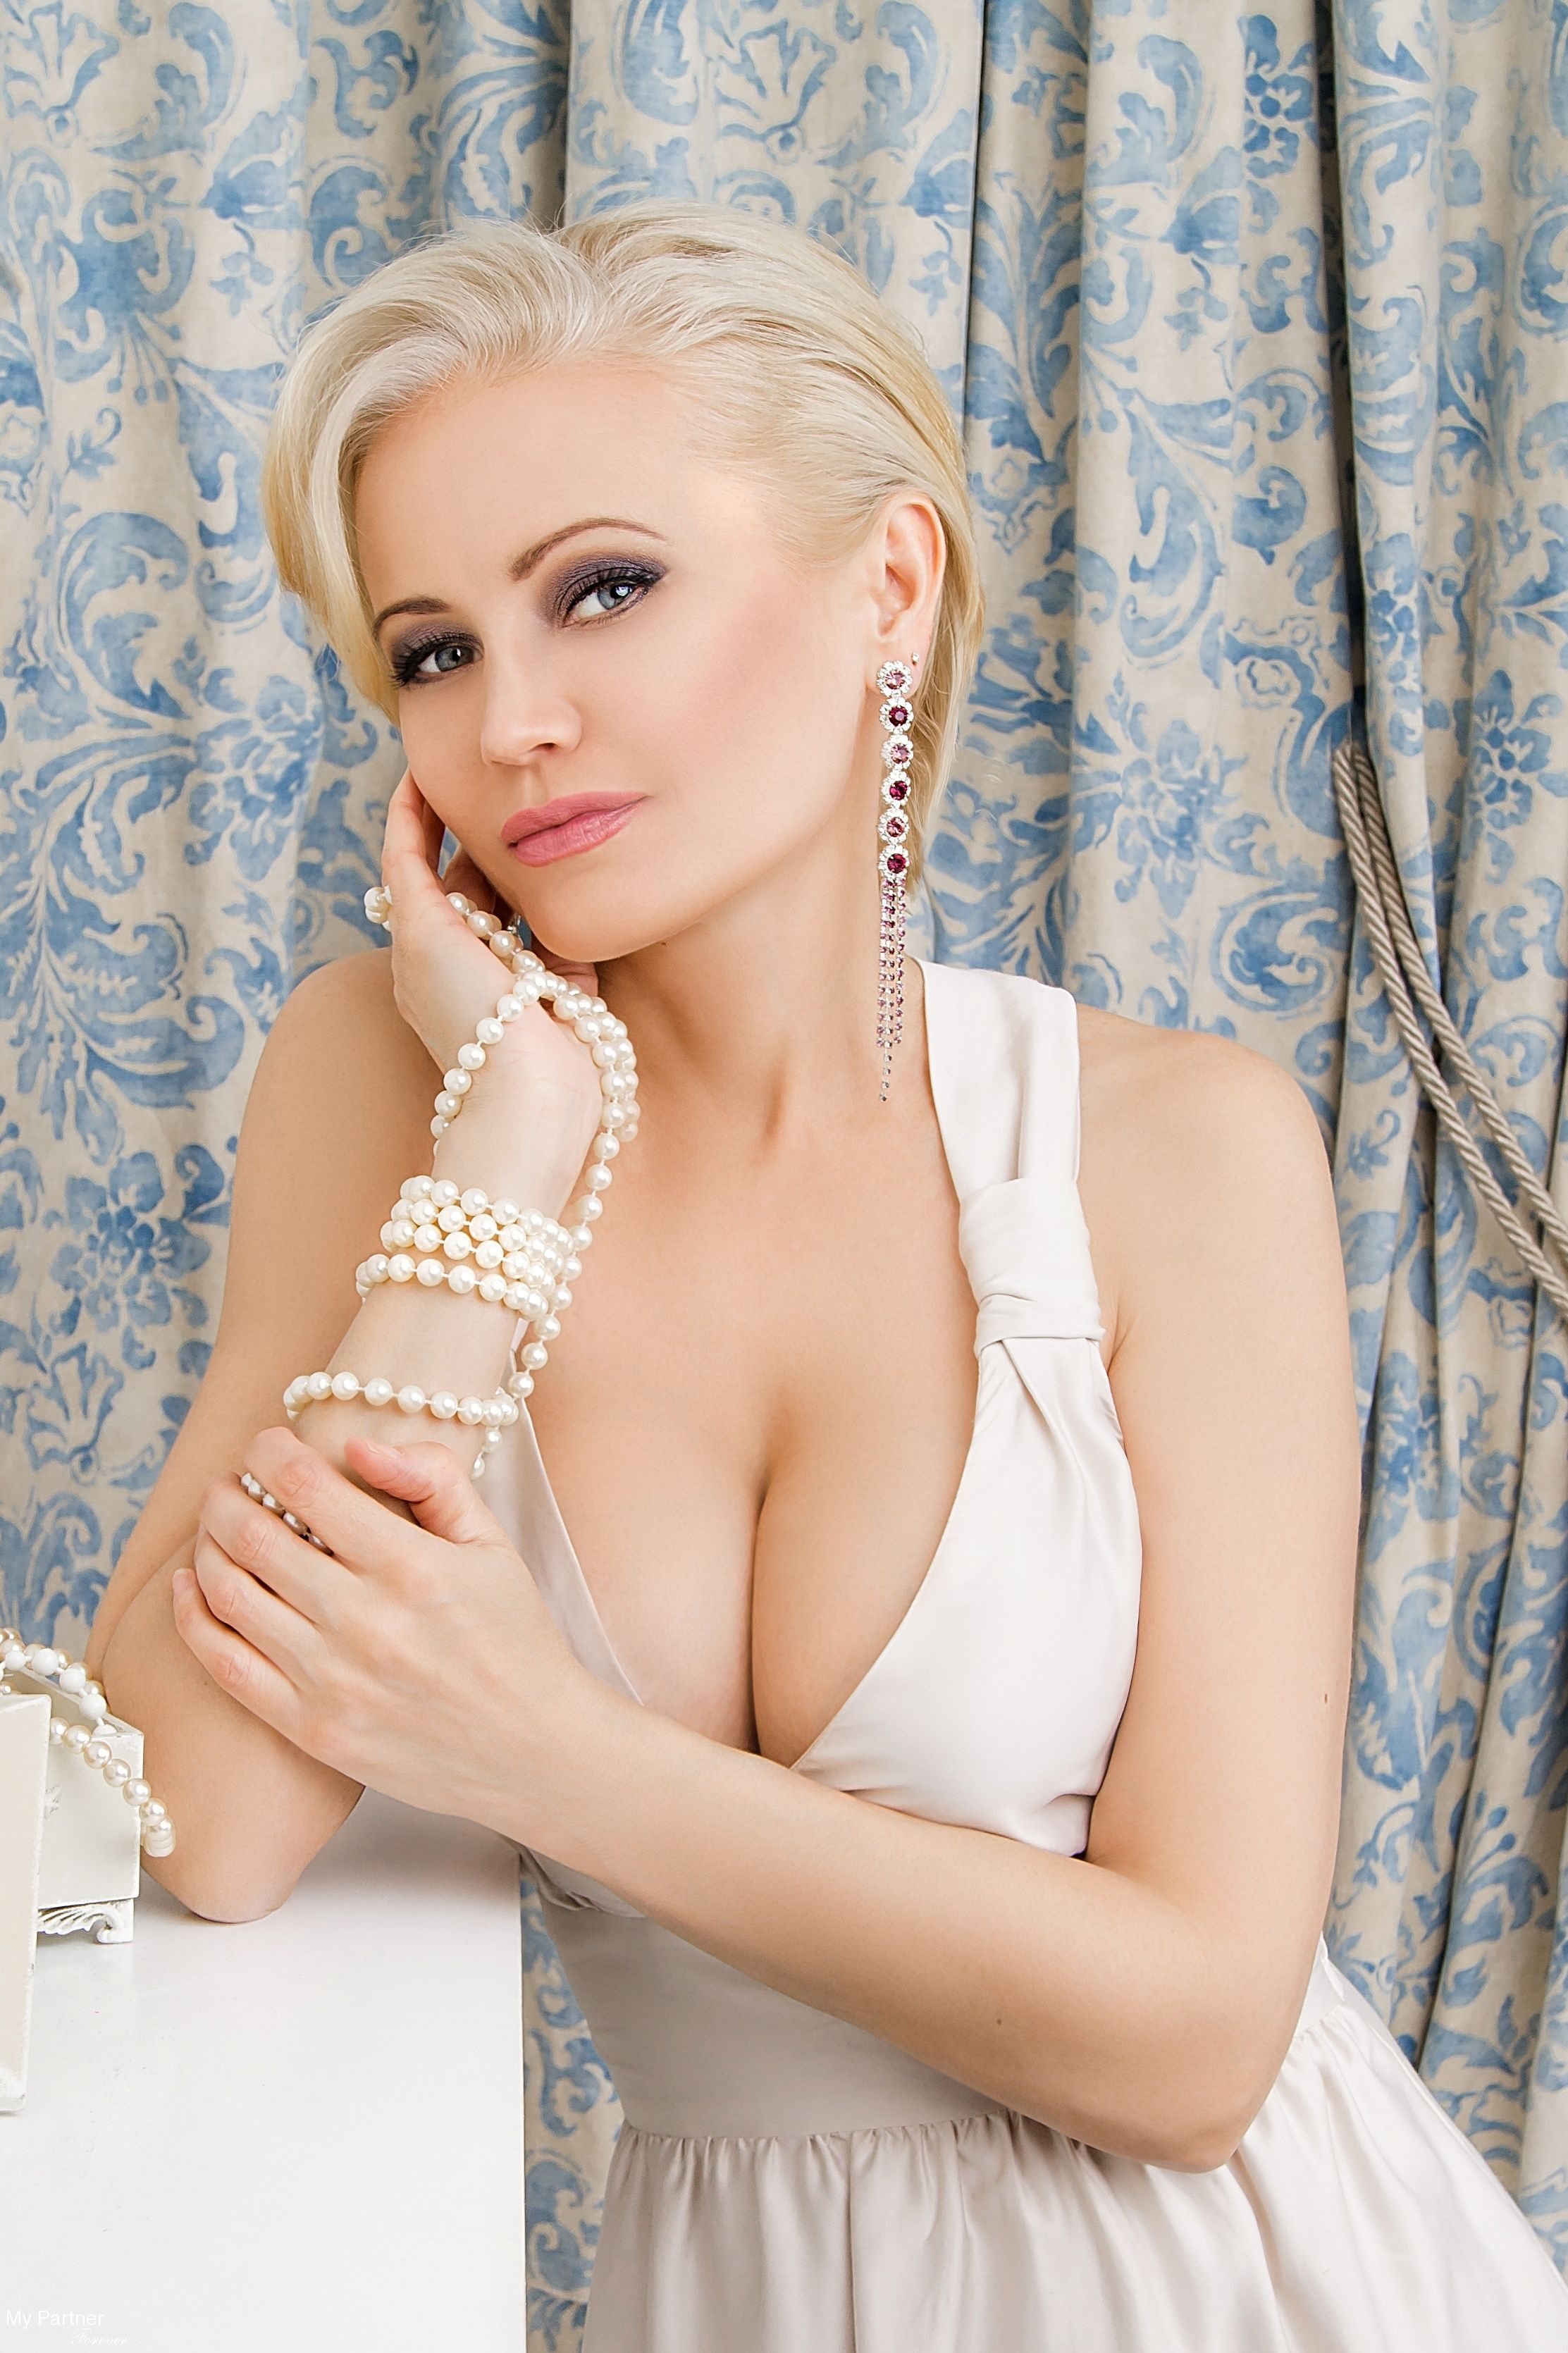 Women Marriage Ukrainian Women For 4